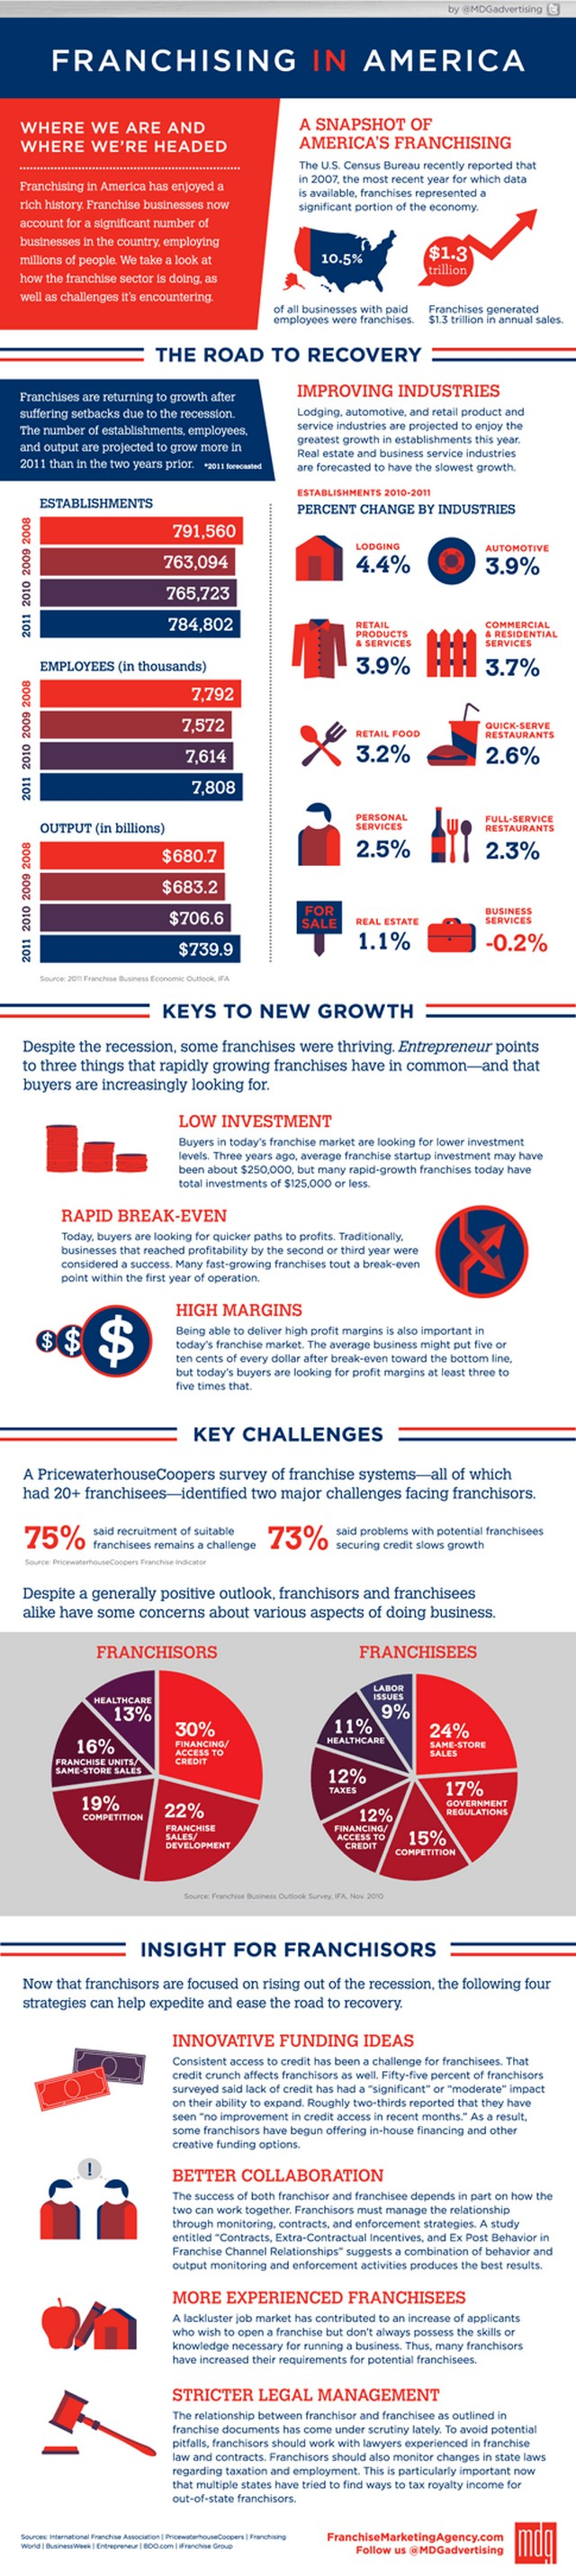 Franchising in America Infographic by MDG Advertising